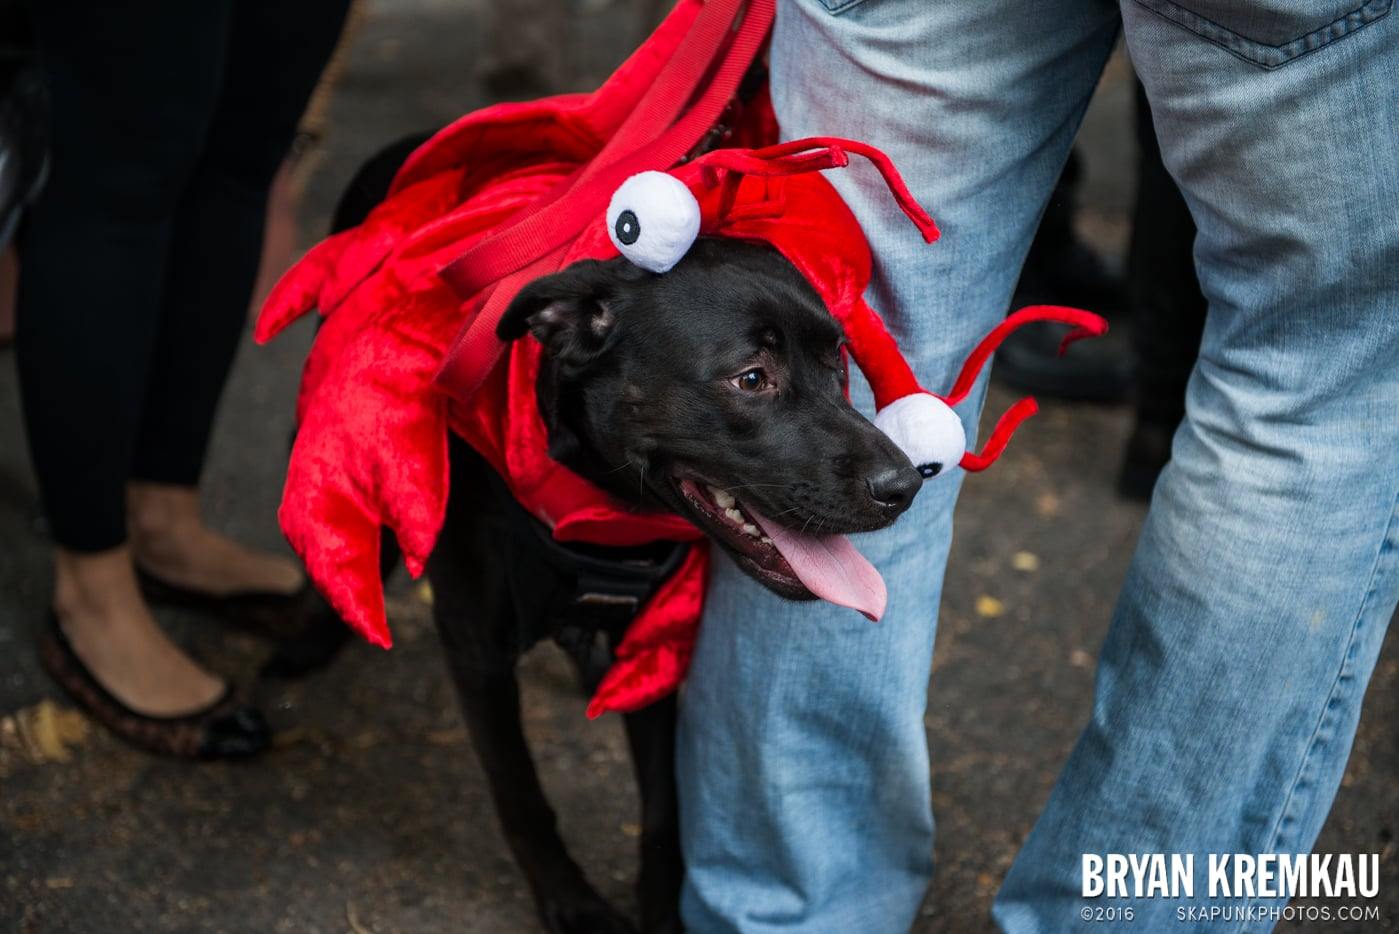 Tompkins Square Halloween Dog Parade 2015 @ Tompkins Square Park, NYC – 10.24.15 (27)